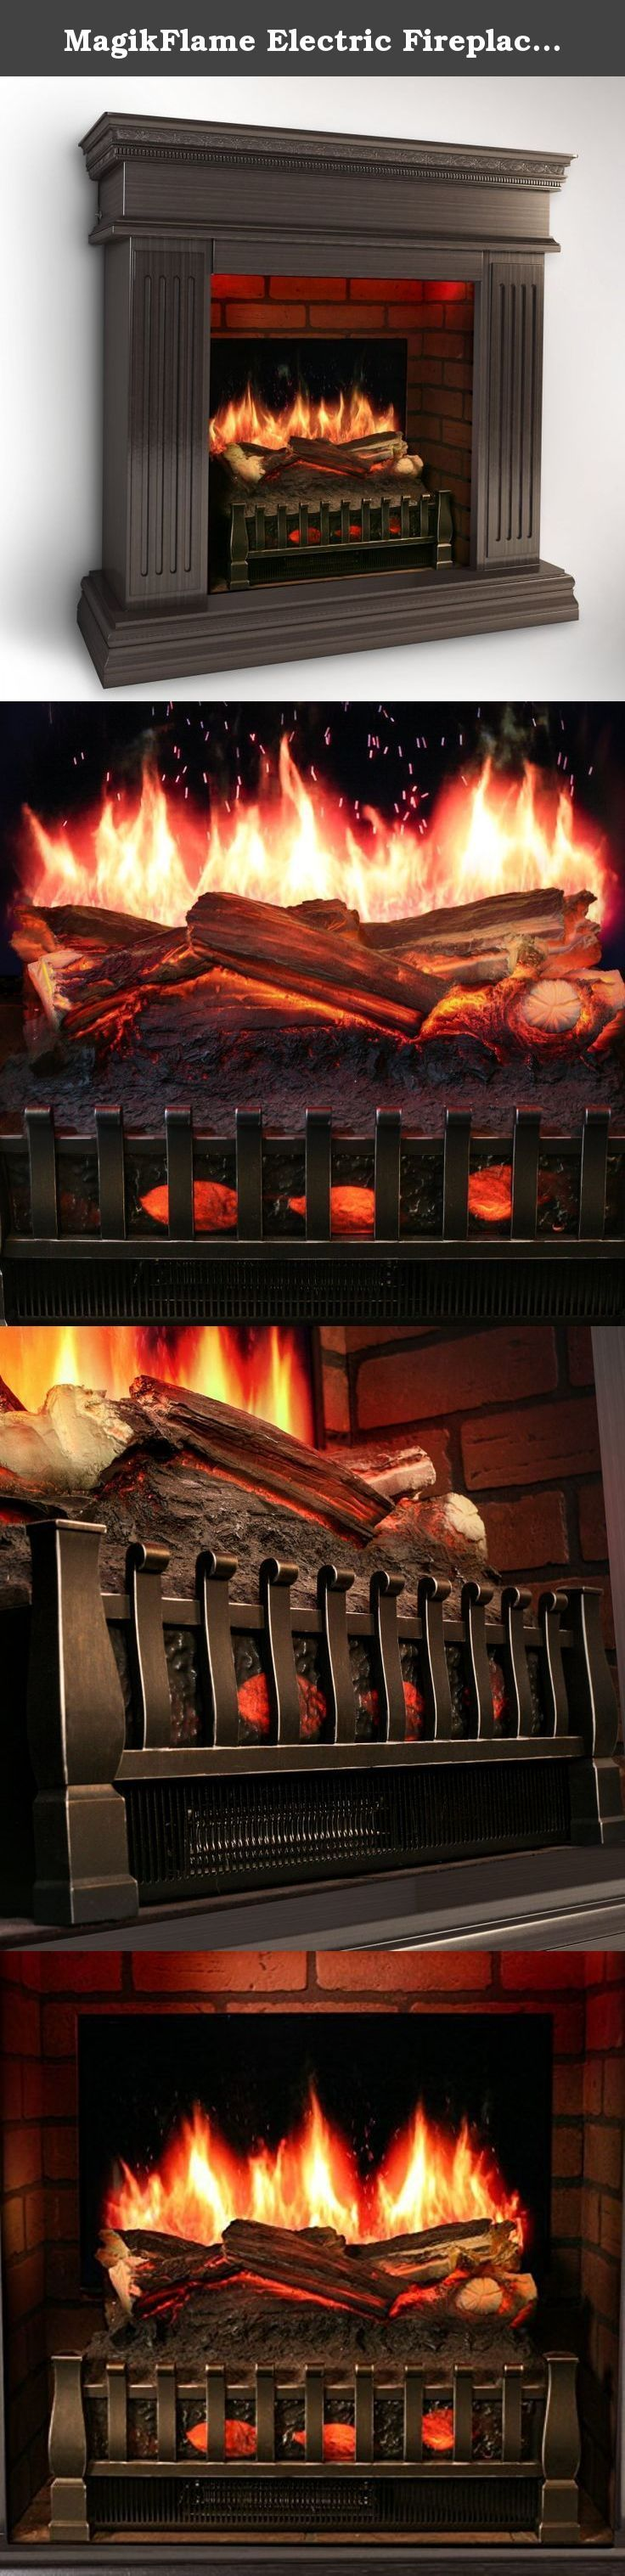 MagikFlame Electric Fireplace w/ Realistic Flame Effects + Crackling Logs Sound + Fresh Cut Pine Scent + Built in Heater [EASTERN BLACK WALNUT]. Realistic Flames w/ Smoke & Embers Has the most realistic flame effects of any electric fireplace. Experience vivid photo-realistic flames dancing upon logs complete w/ glowing embers & wispy rolling smoke. Authentic Log Glow Effects Each log is meticulously painted & lit from the inside using low powered colorful LED lamps that pulsate to…